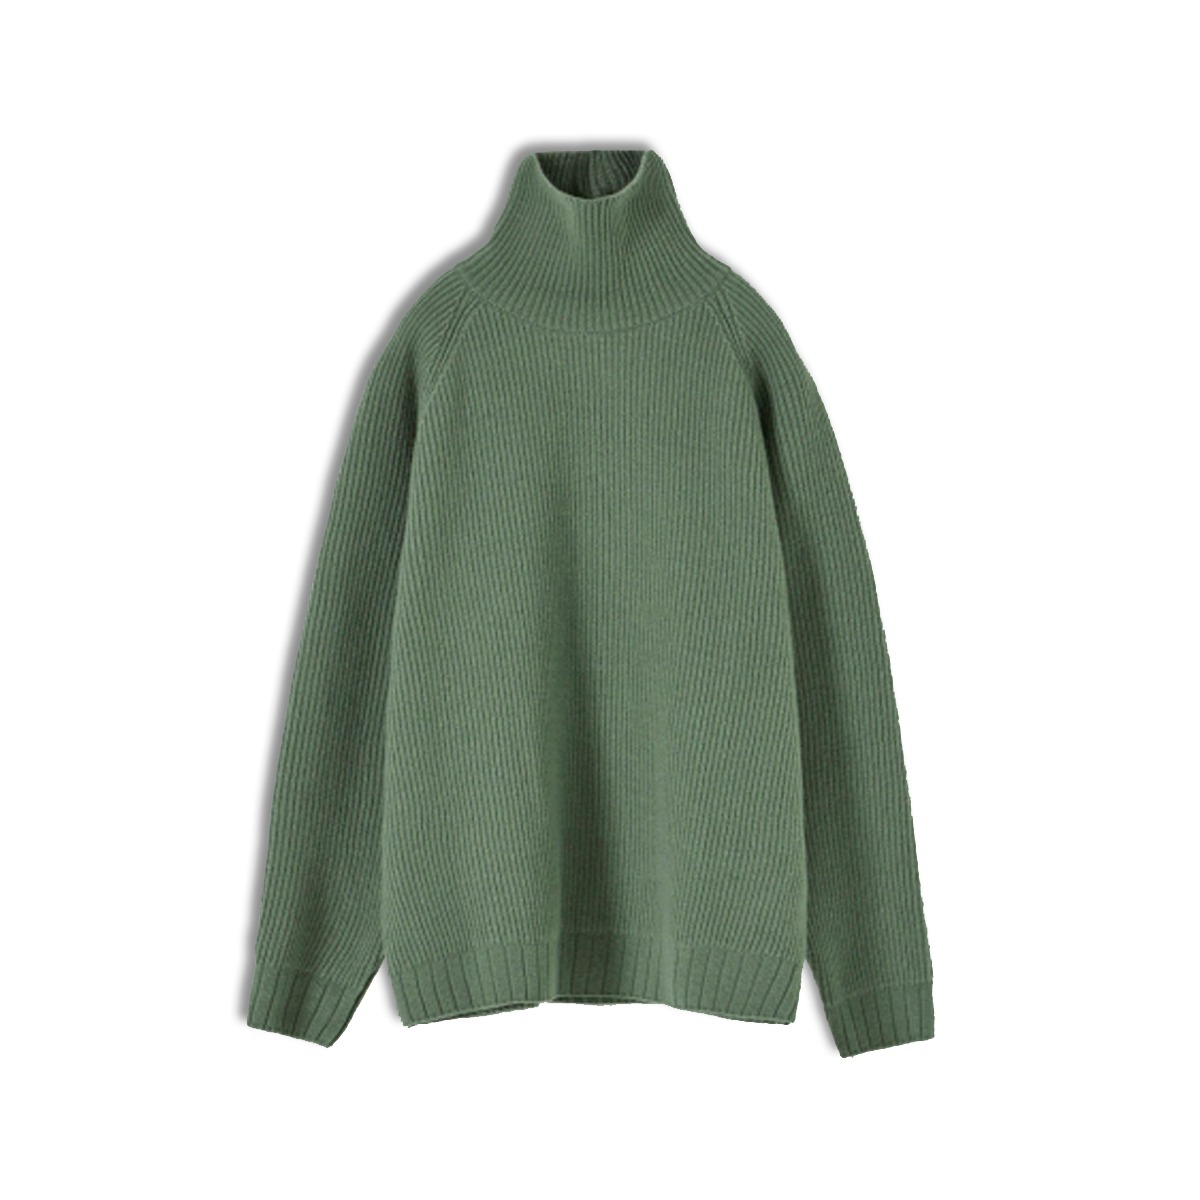 [YOUTH] OVERSIZED TURTLE NECK SWEATER 'PALE GREEN'